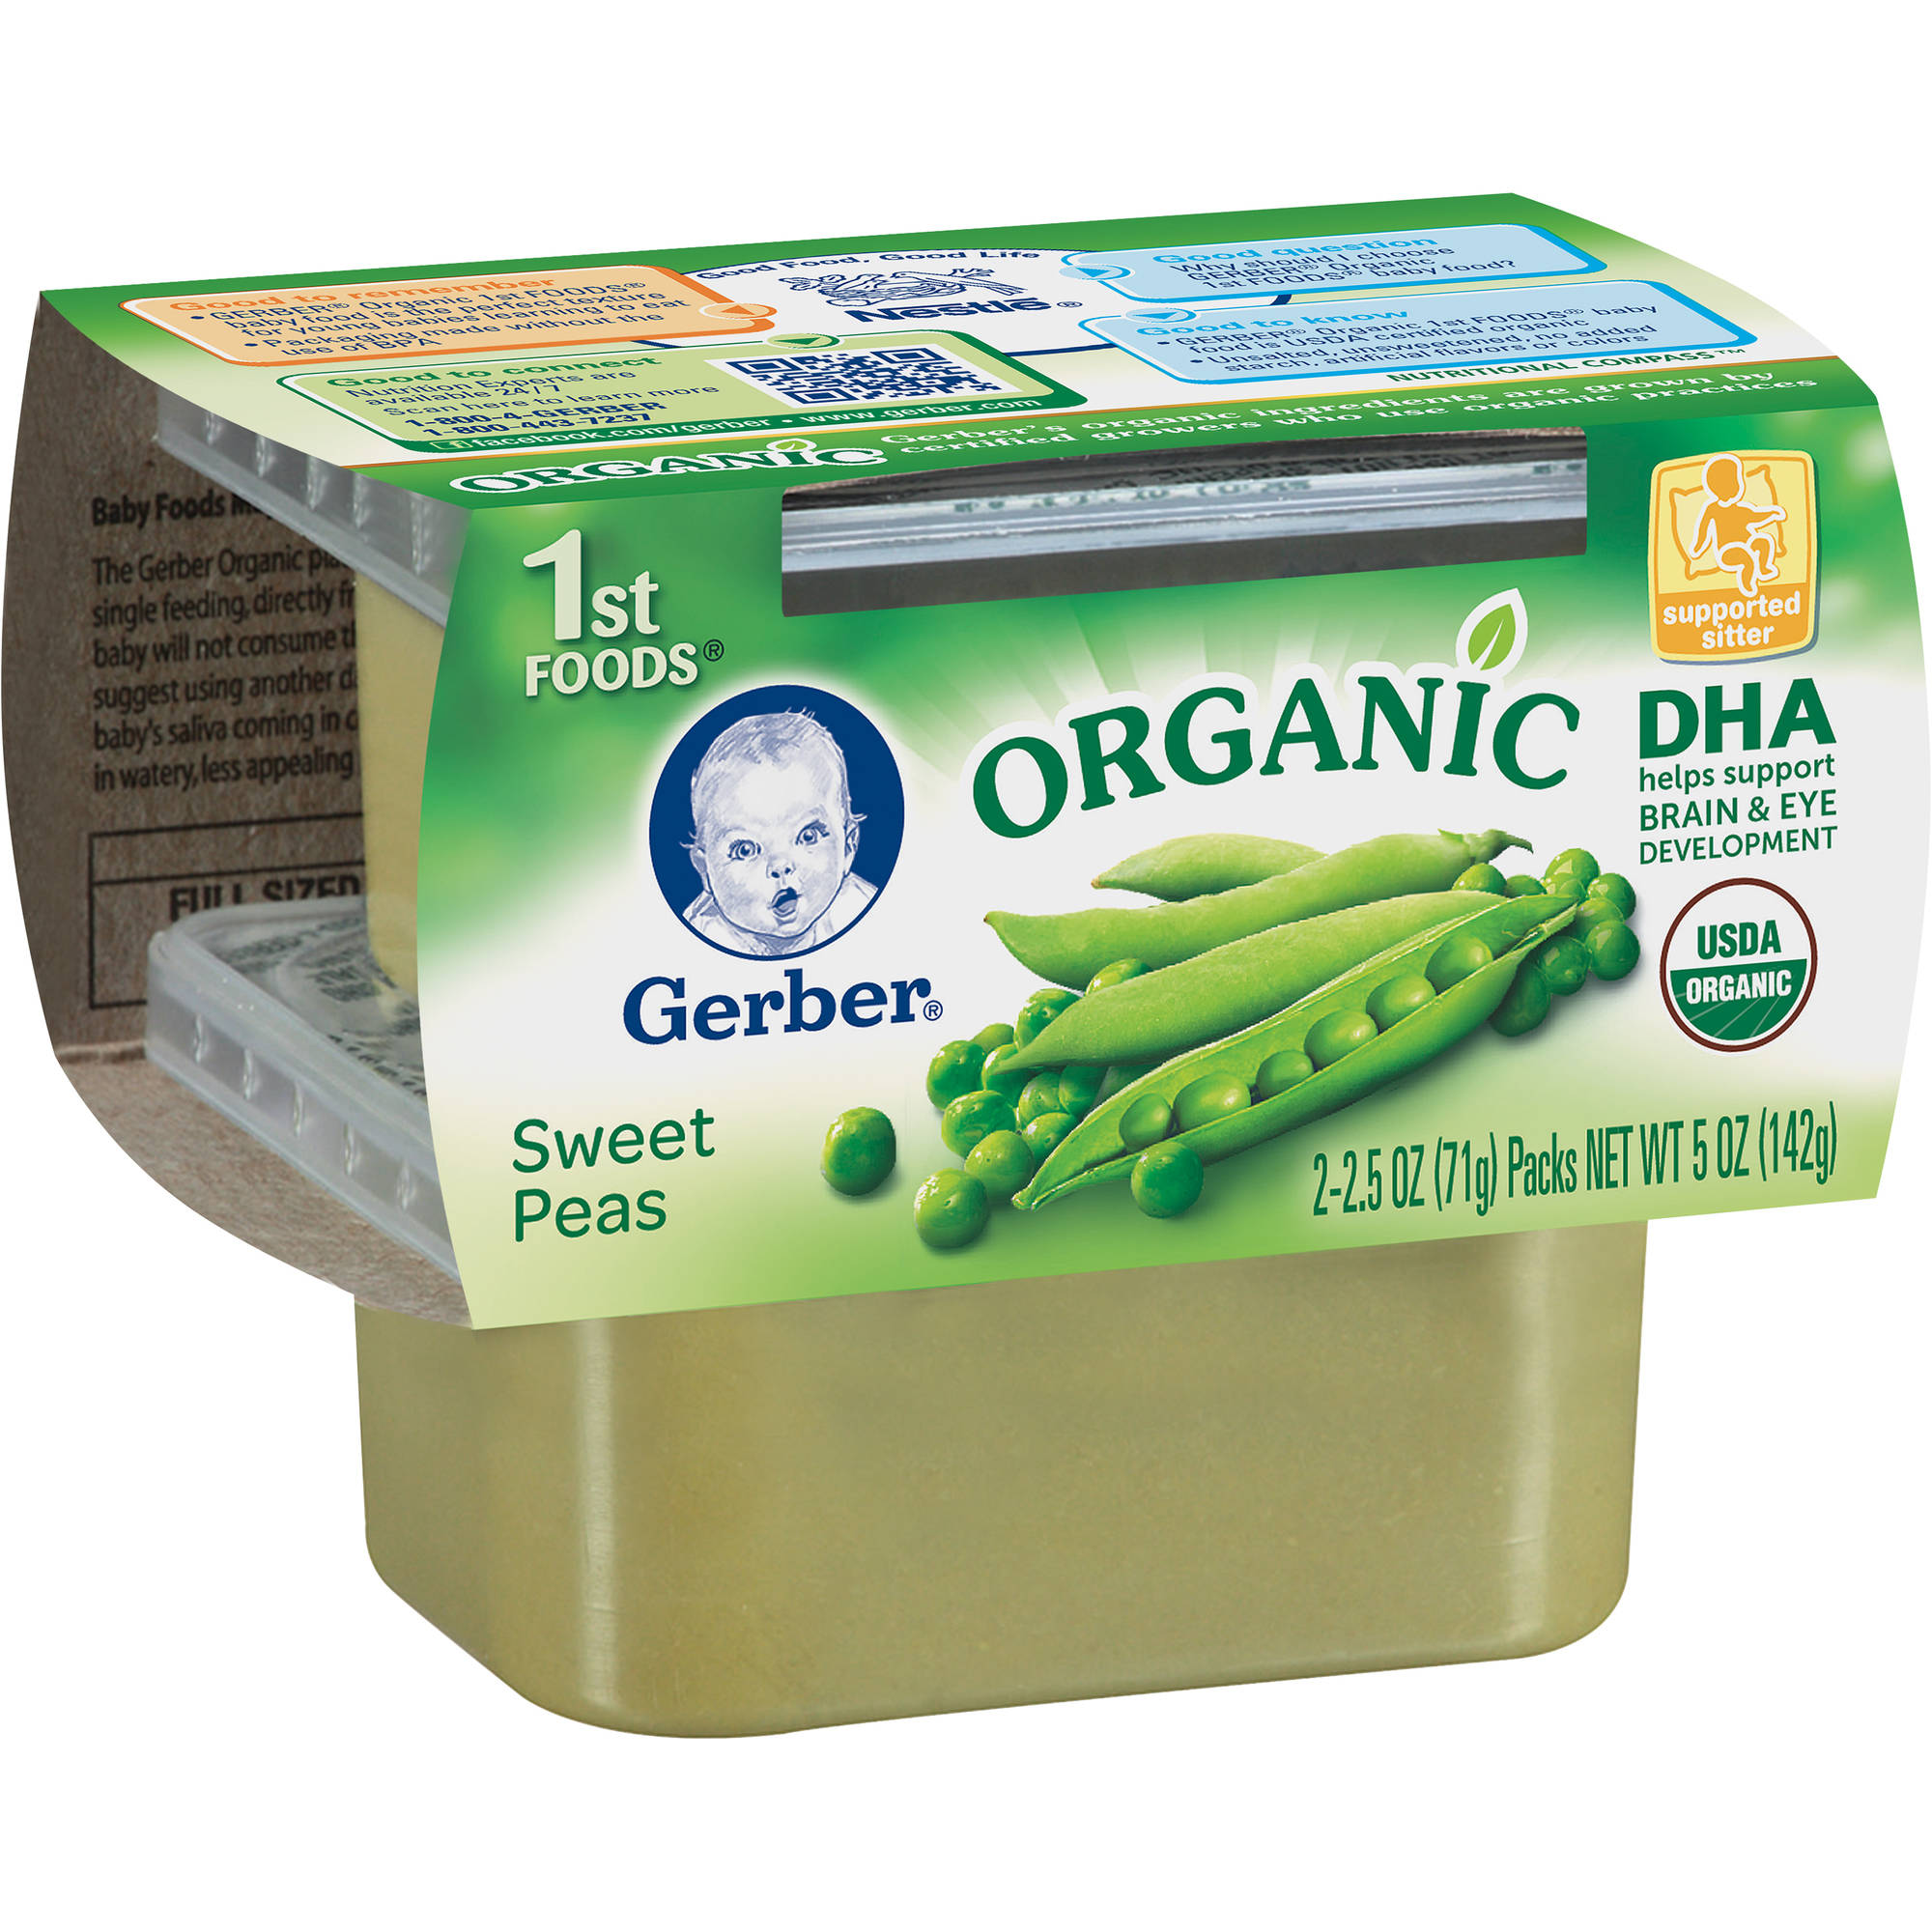 Gerber produces their own organic food and ensures the quality of their fields by performing rigorous soil testing. Organic 1st Foods fruits include applesauce, bananas, pears and prunes. Vegetables include carrots, peas and sweet potatoes.